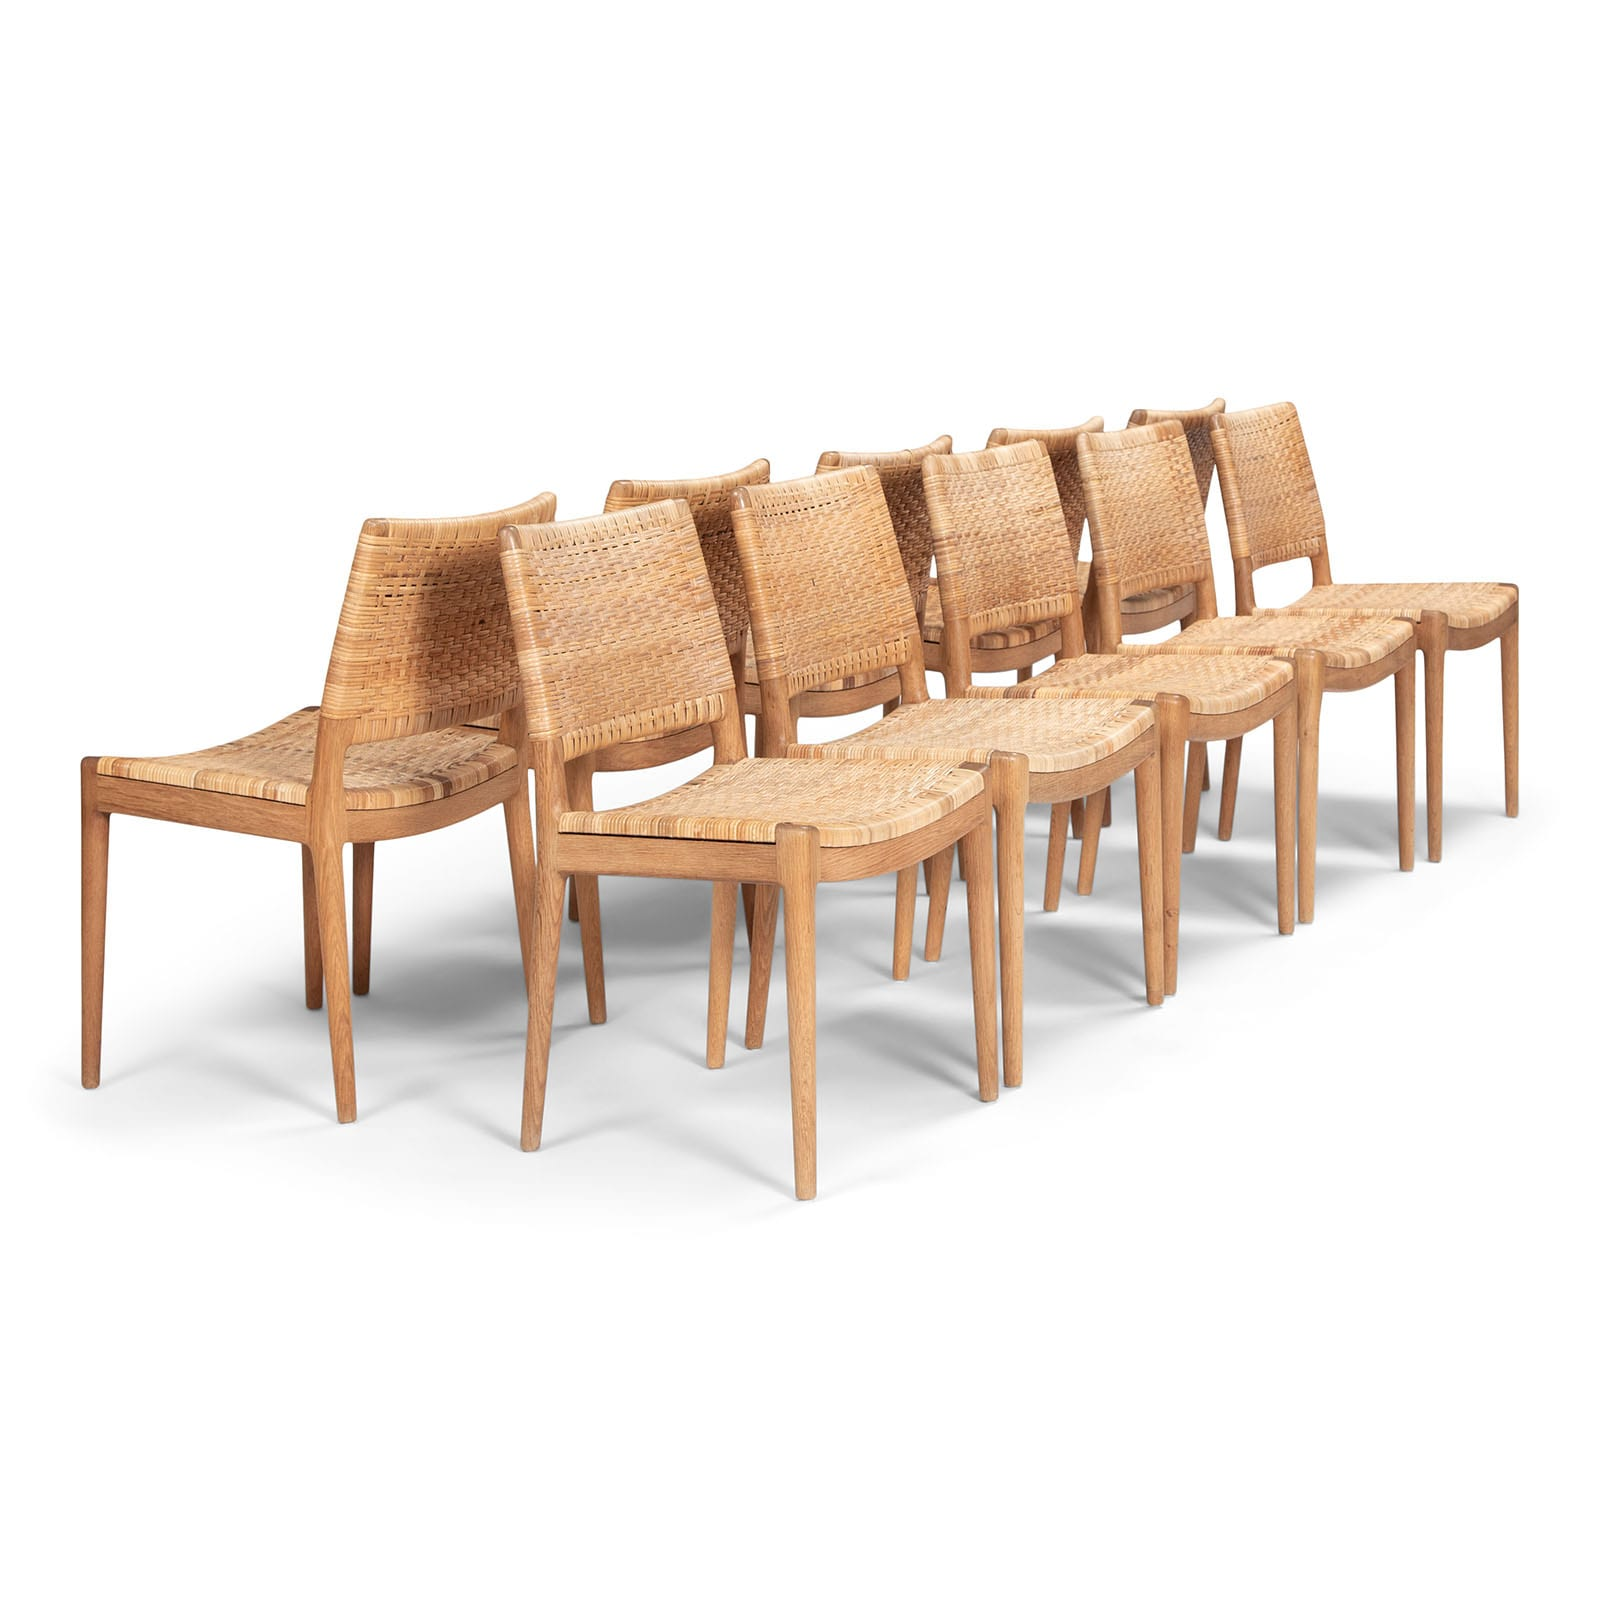 A set of 10 chairs